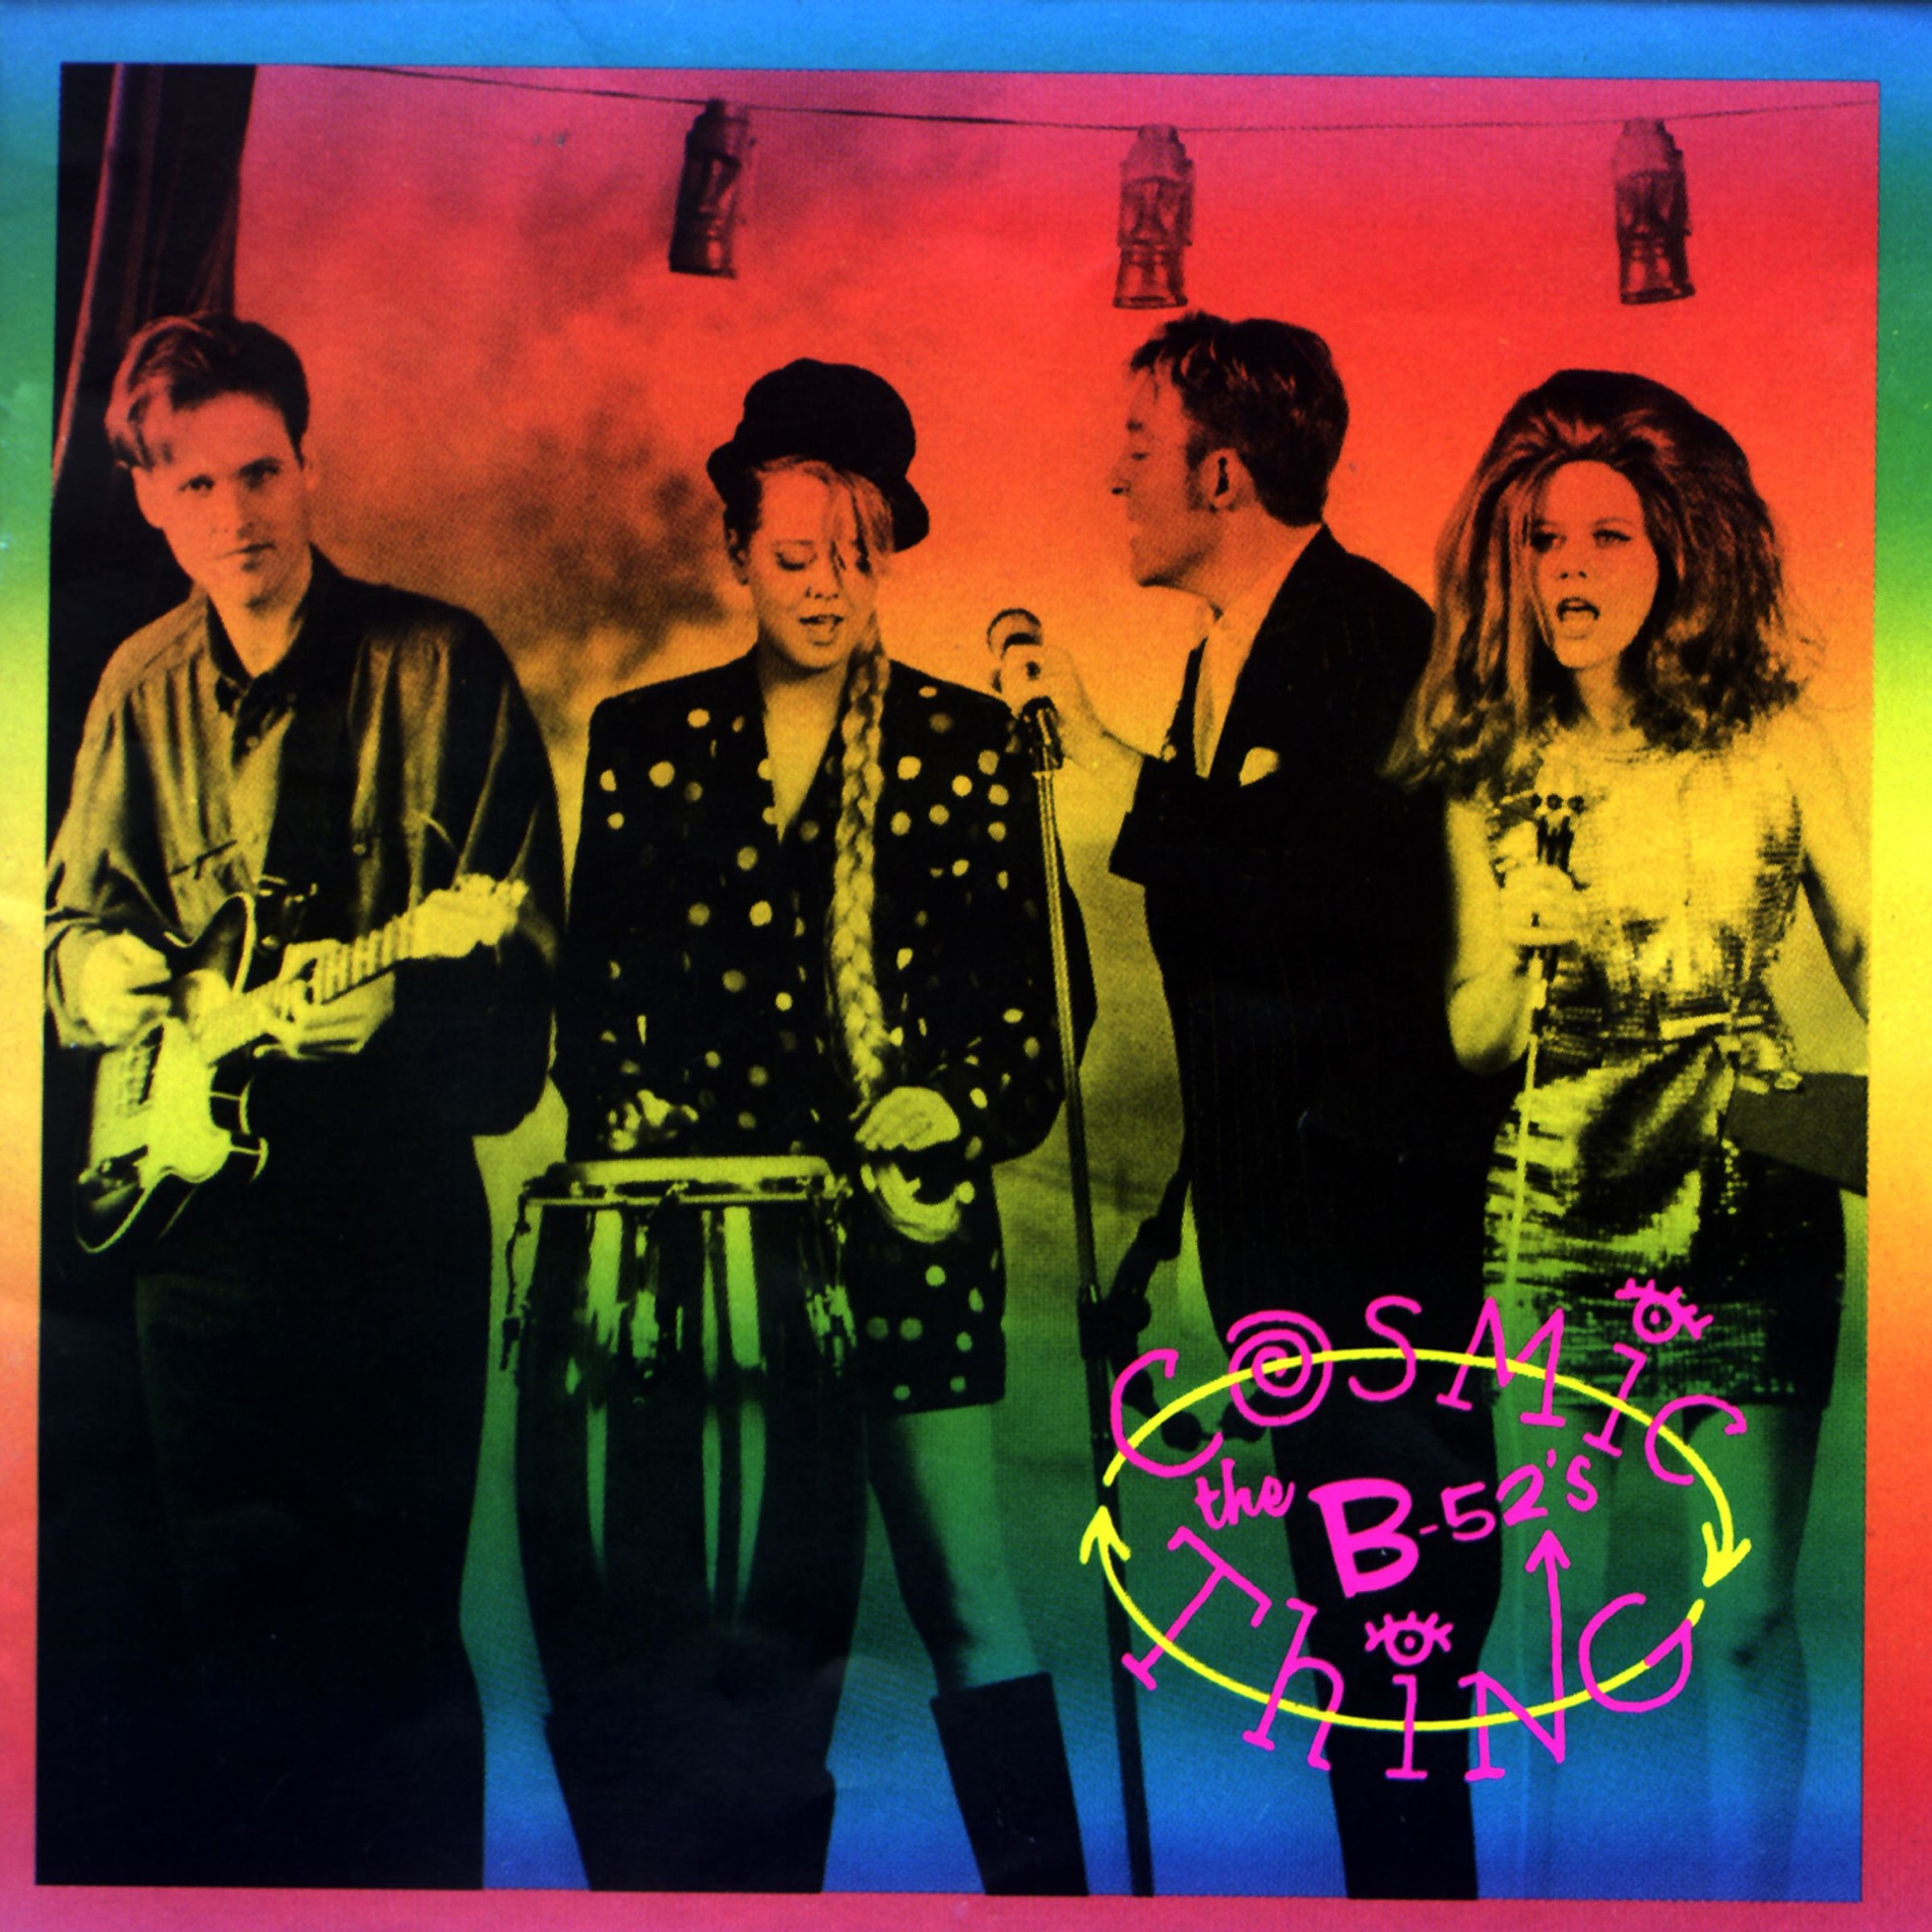 Art for Love Shack by The B-52's